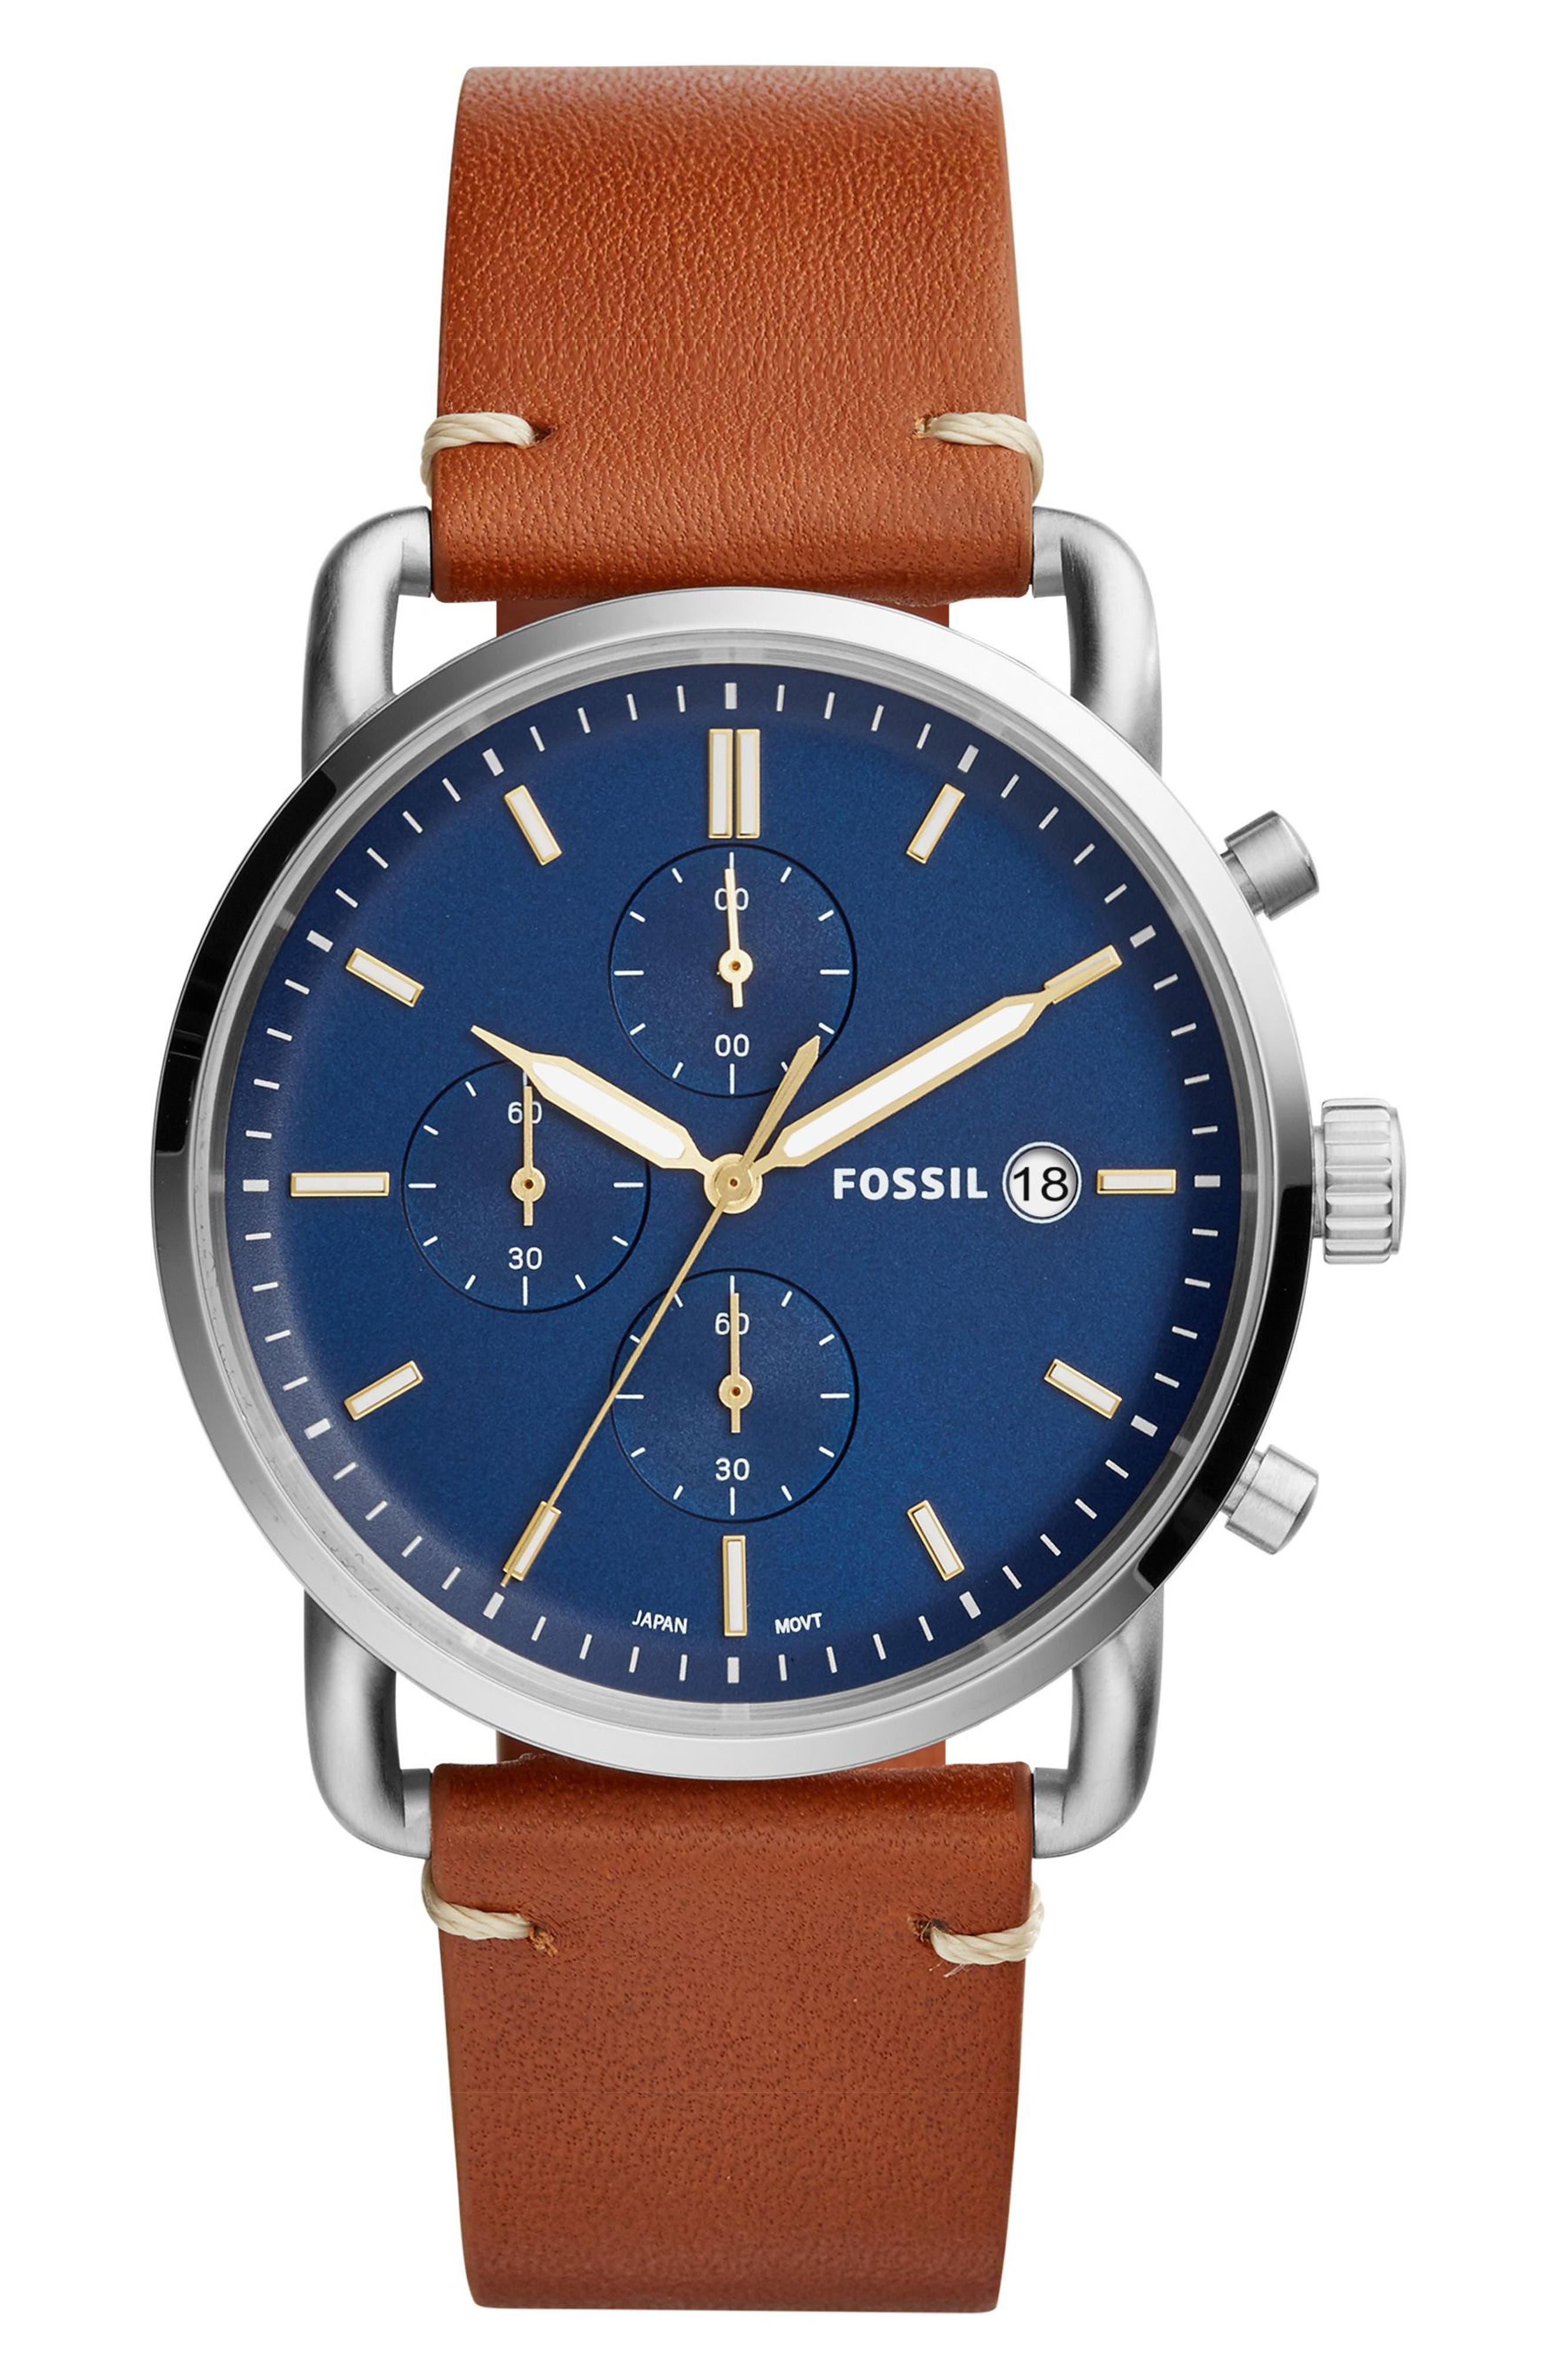 FOSSIL, The Commuter Chronograph Leather Strap Watch, 42mm, Main thumbnail 1, color, BROWN/ BLUE/ SILVER